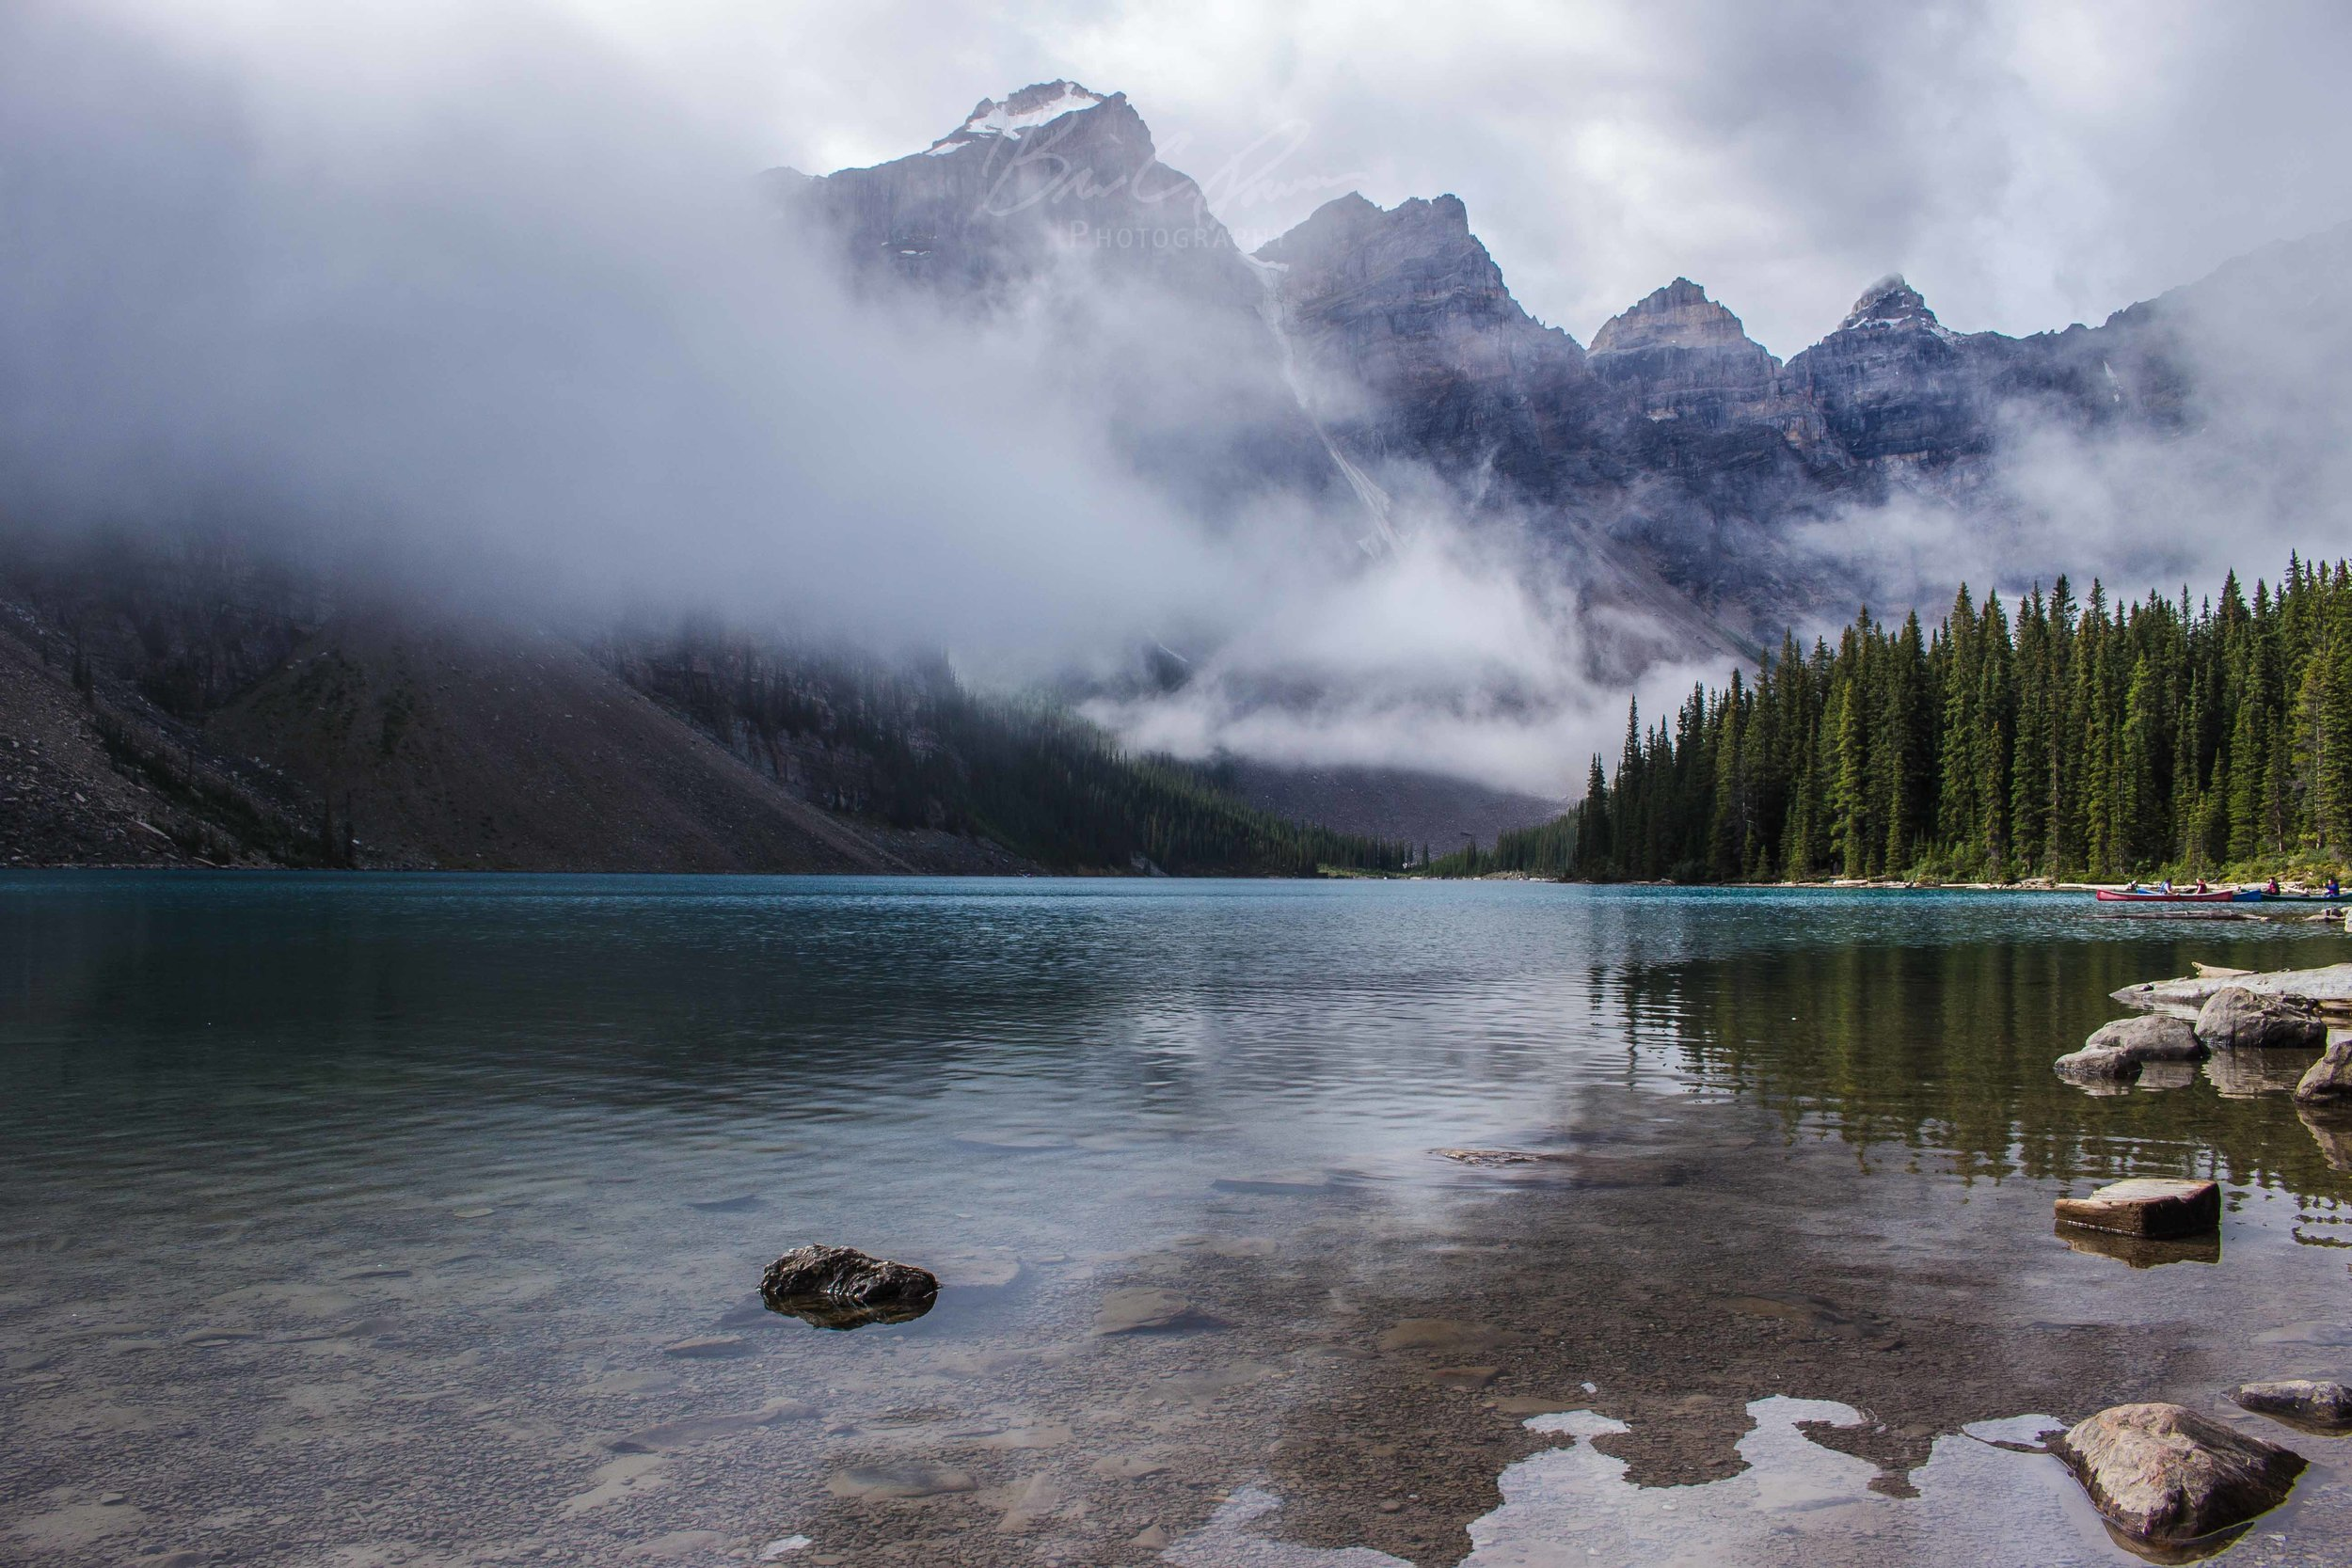 Reflection - Moraine Lake, Banff National Park